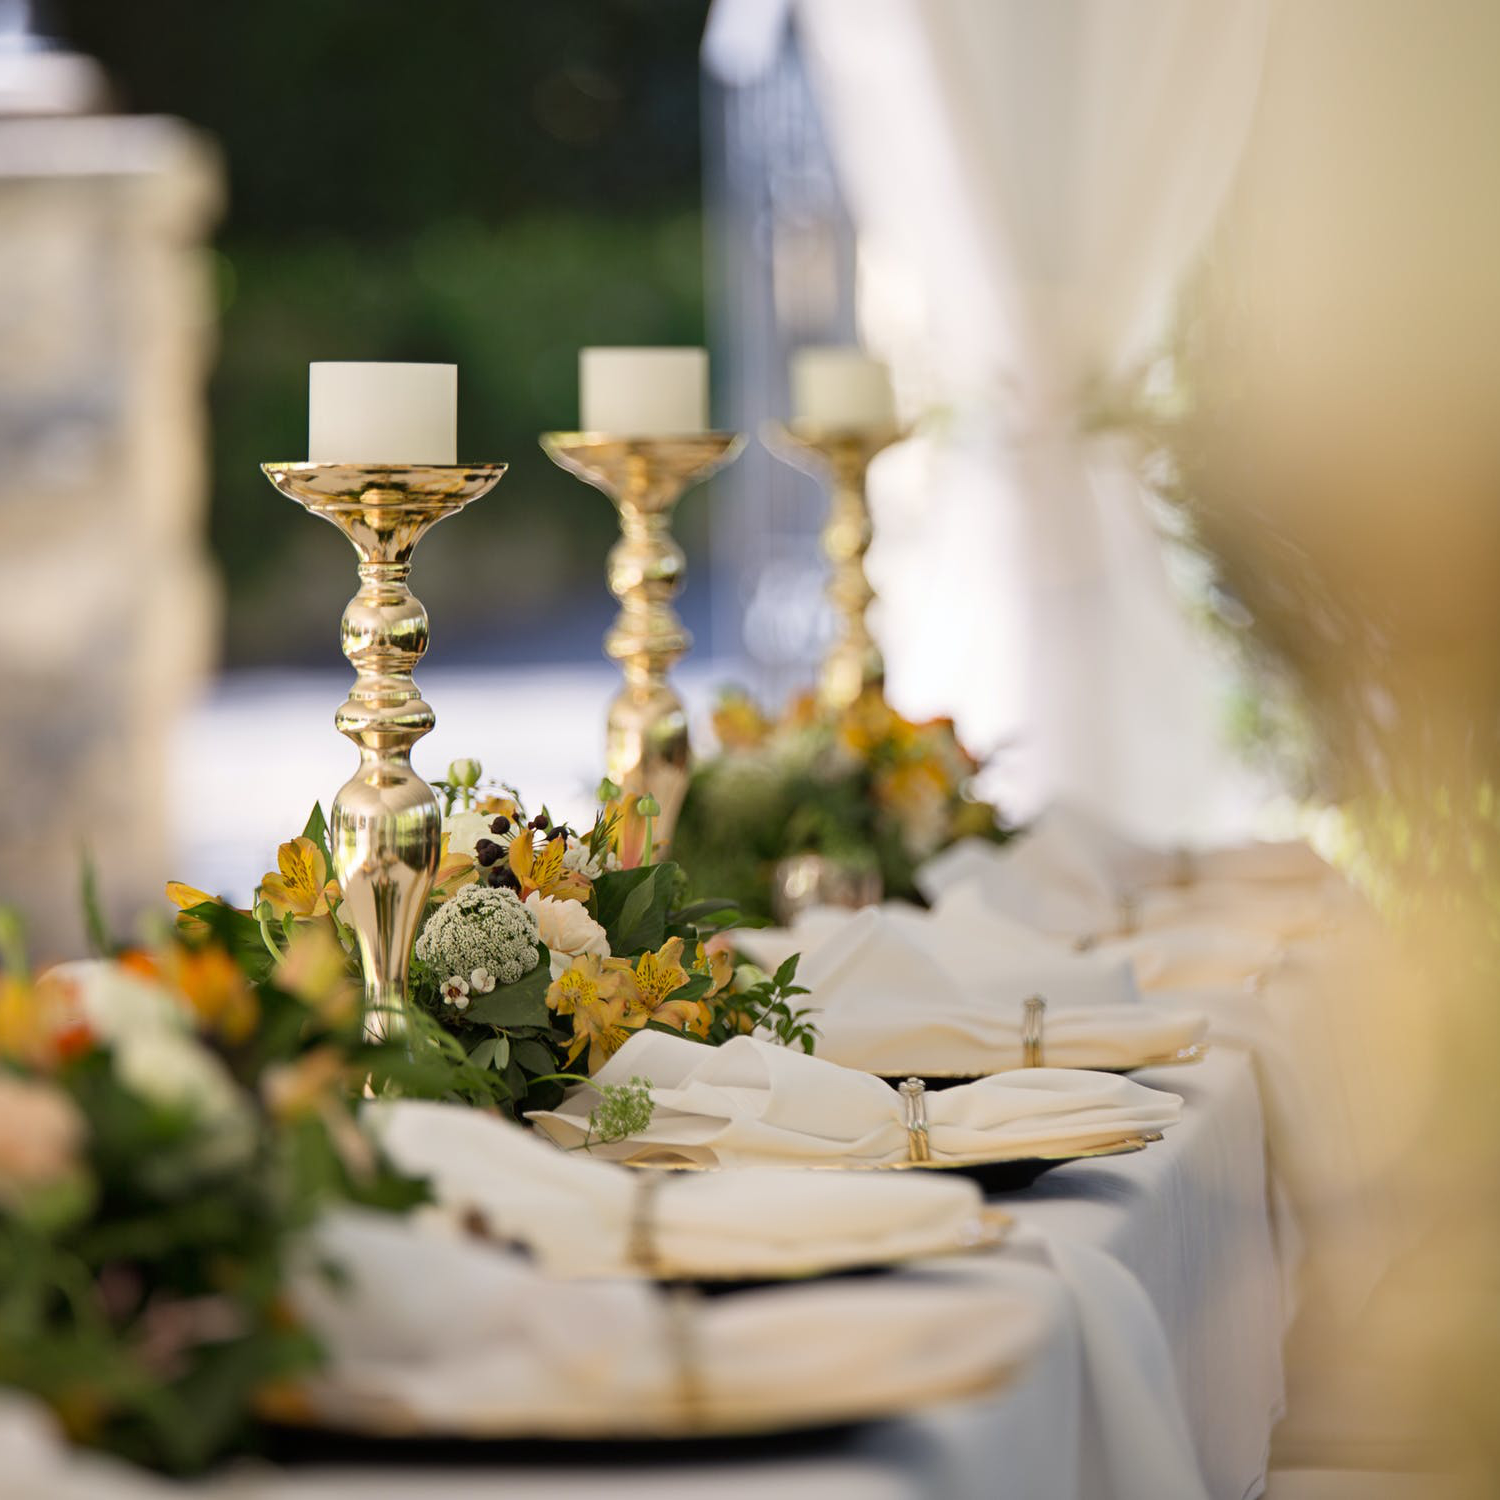 This course will focus on understanding the critical factors in floral and decor consultations.